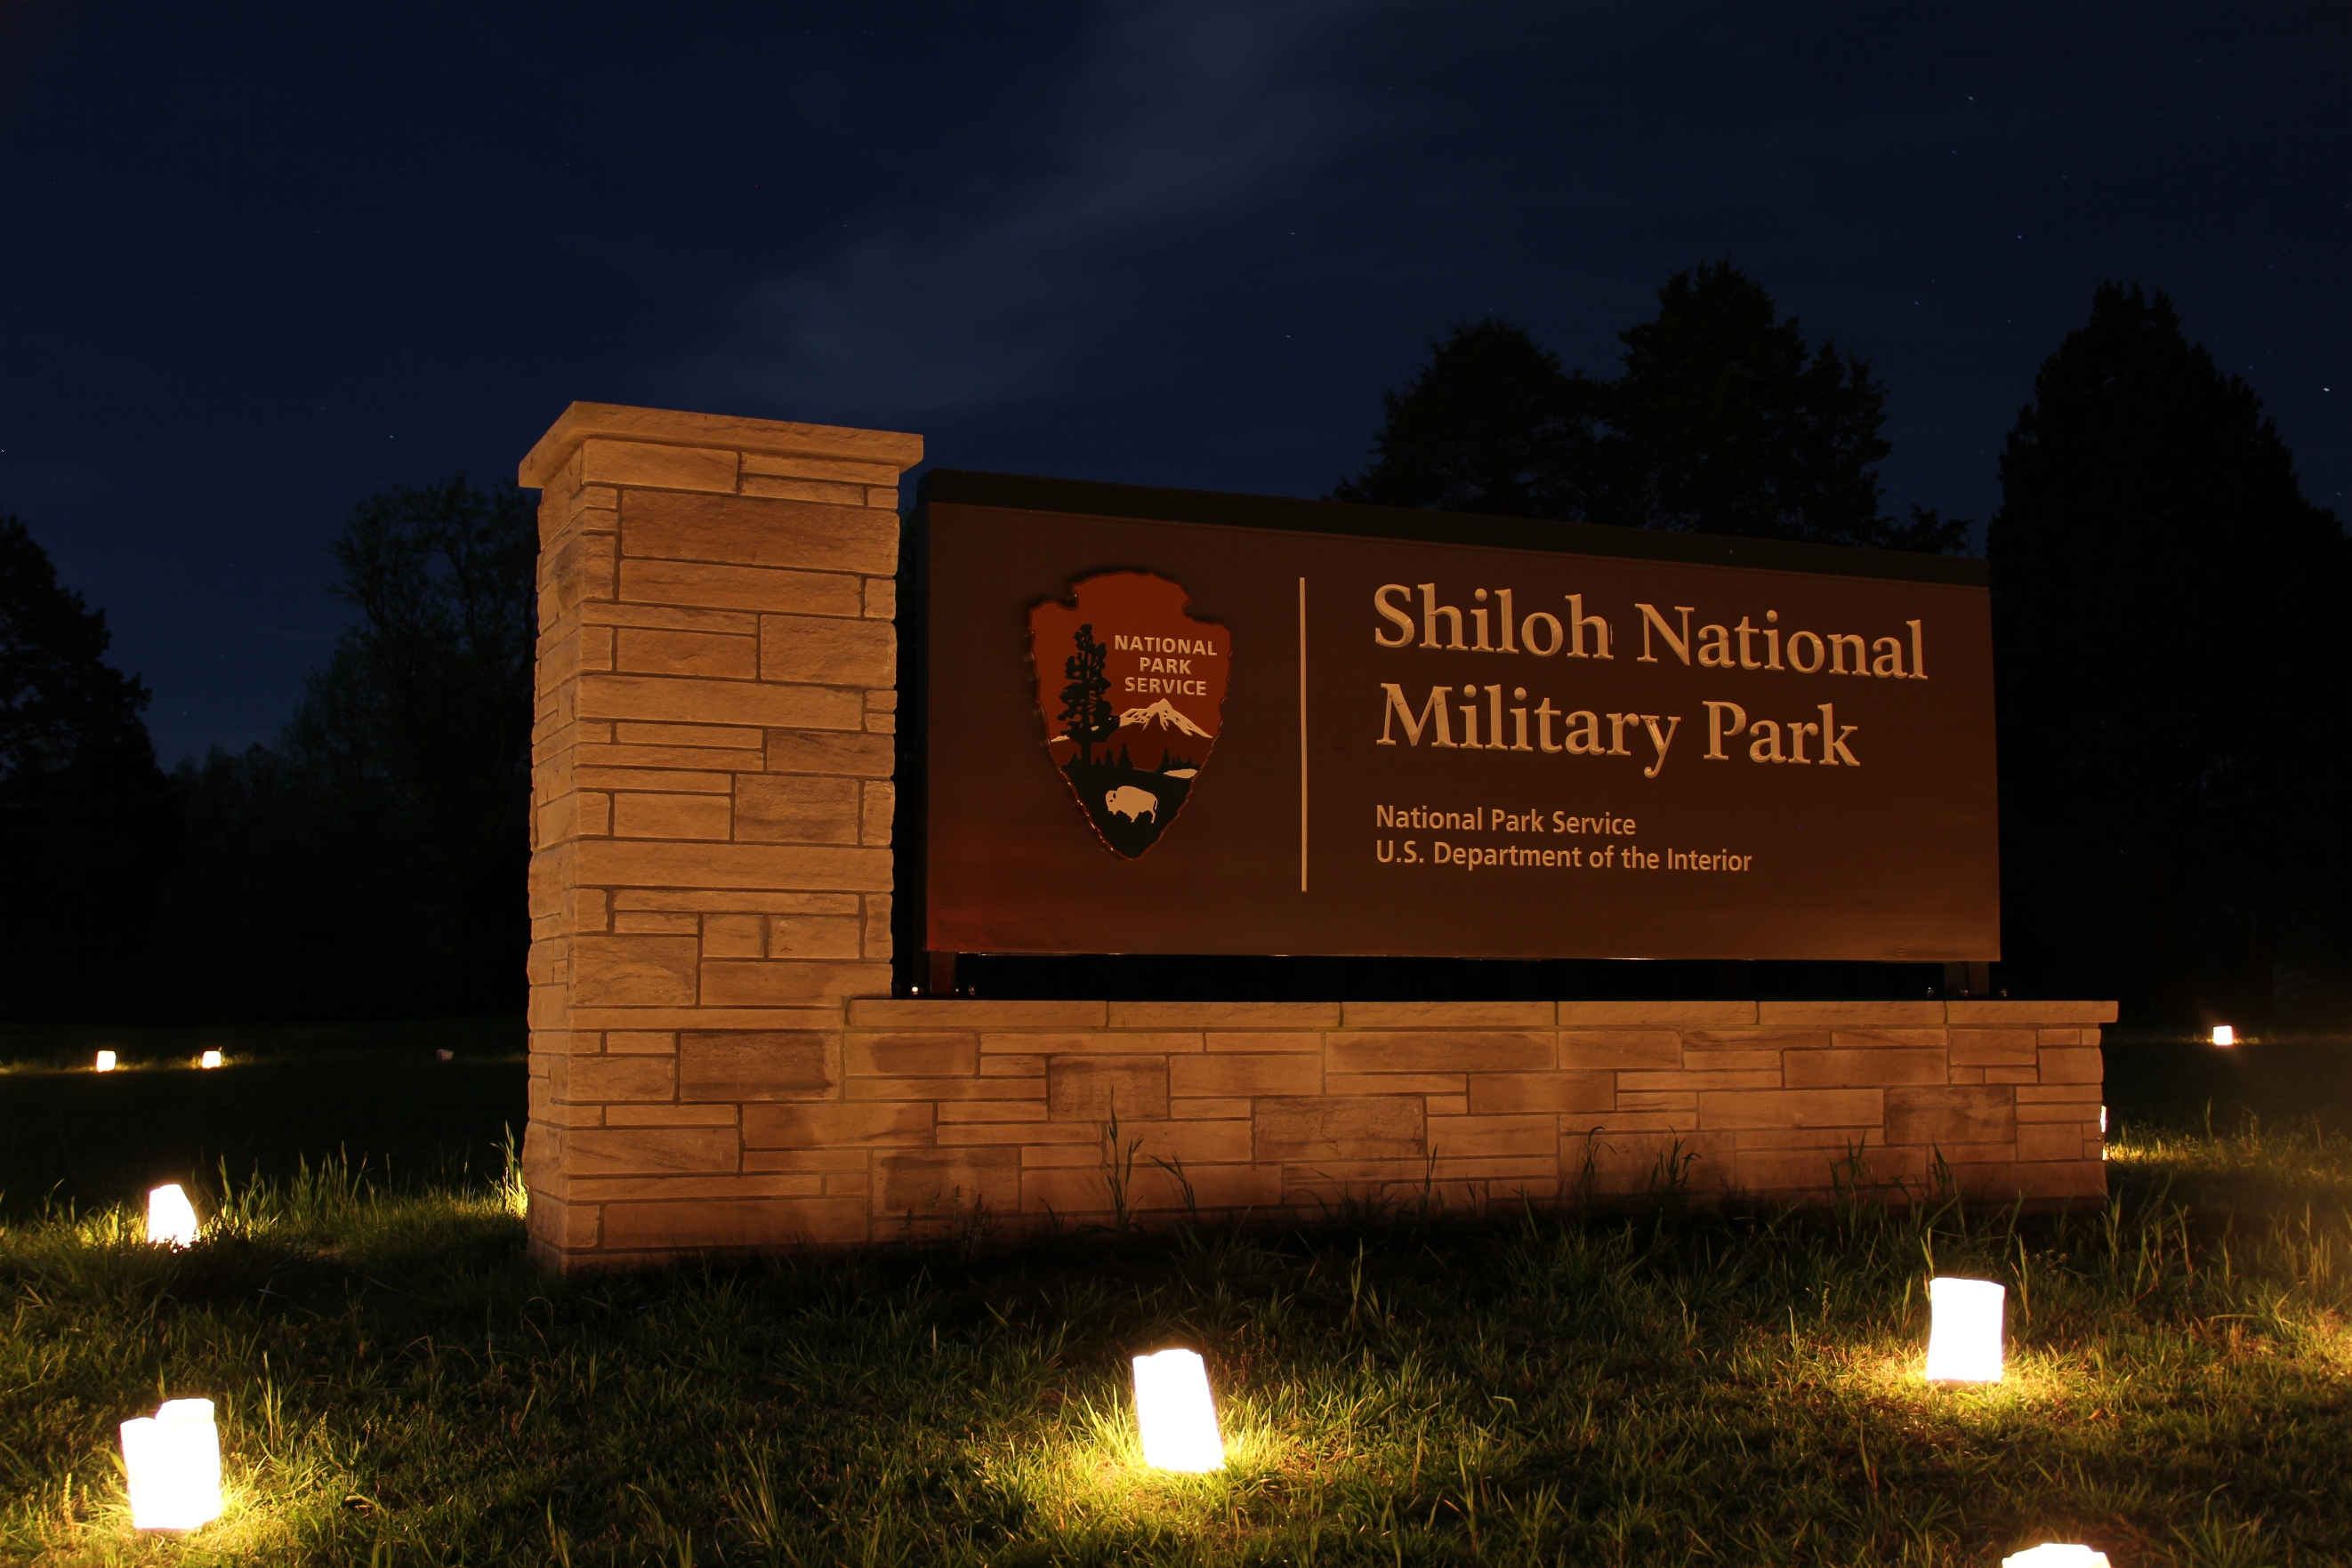 Shiloh's entrance sign